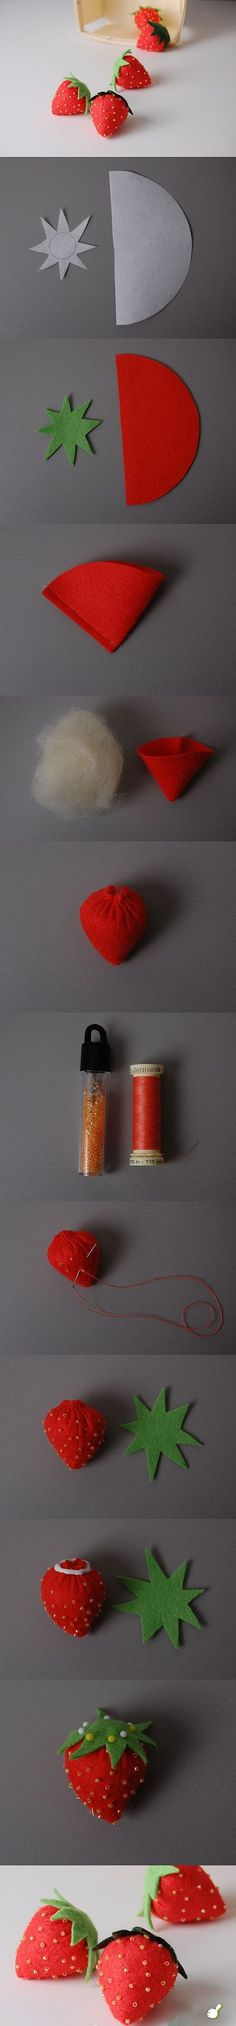 diy strawberry